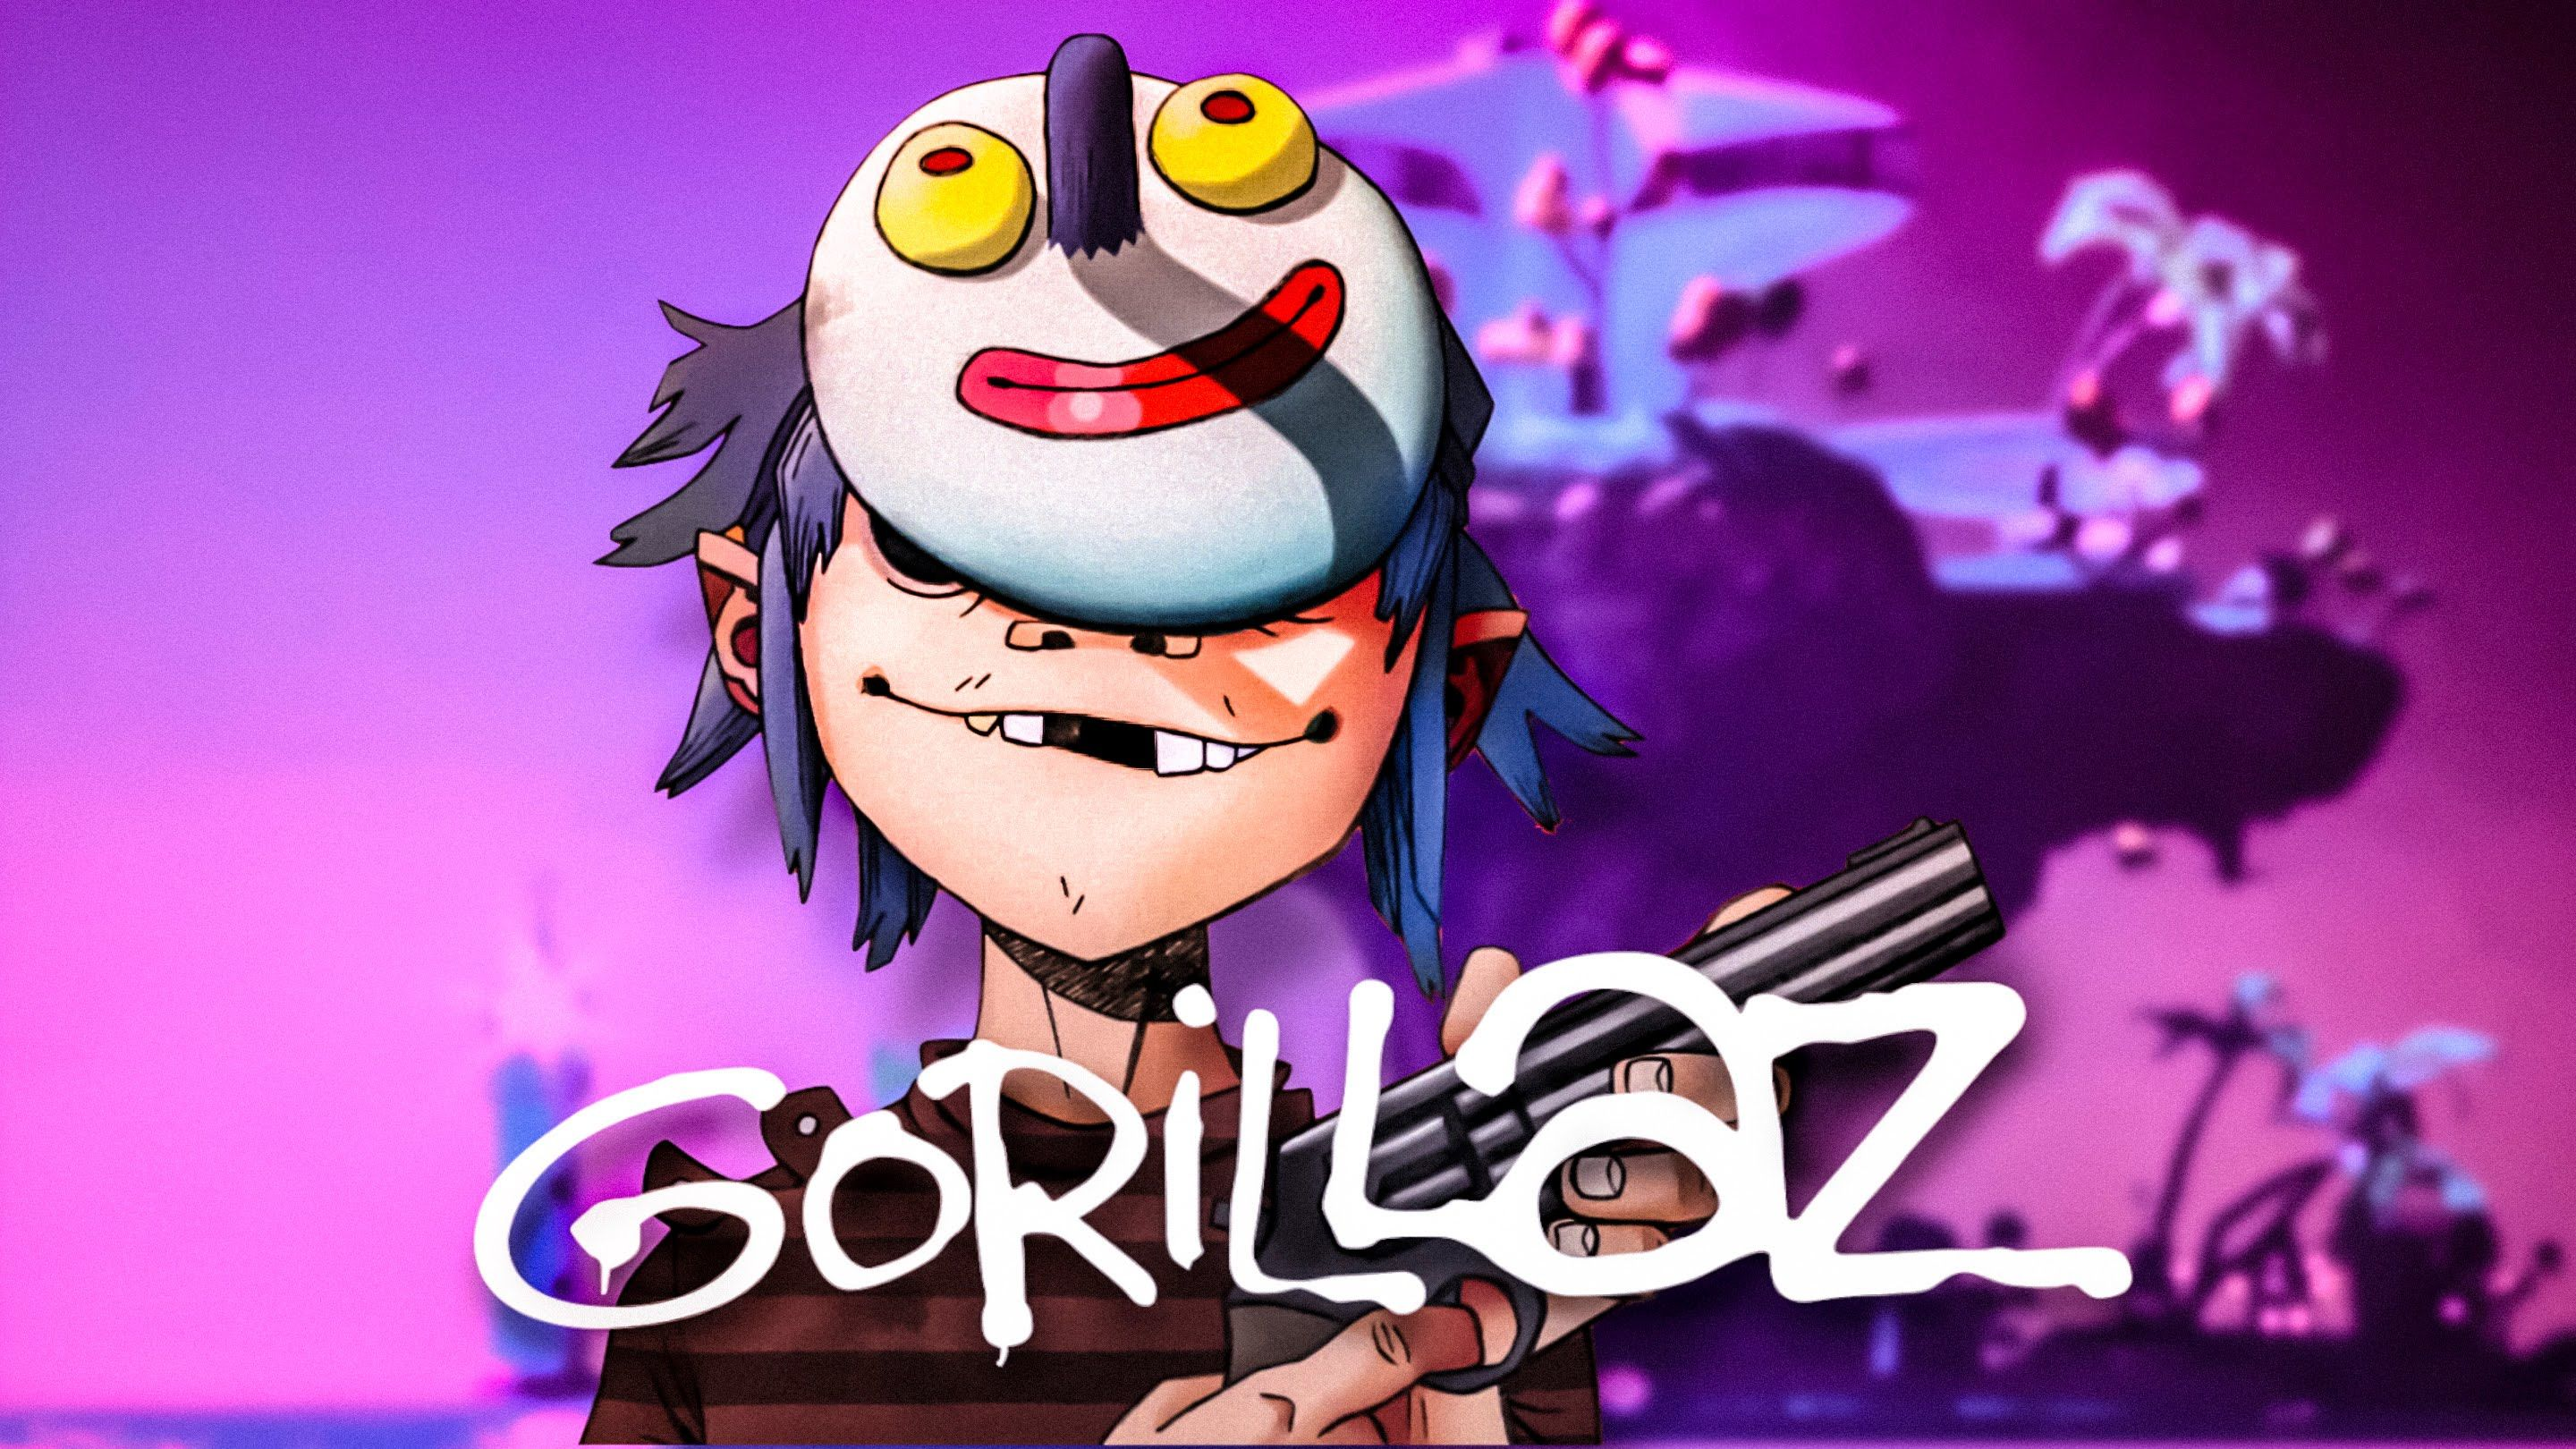 A Look at How the Virtual Band Gorillaz Deconstructed